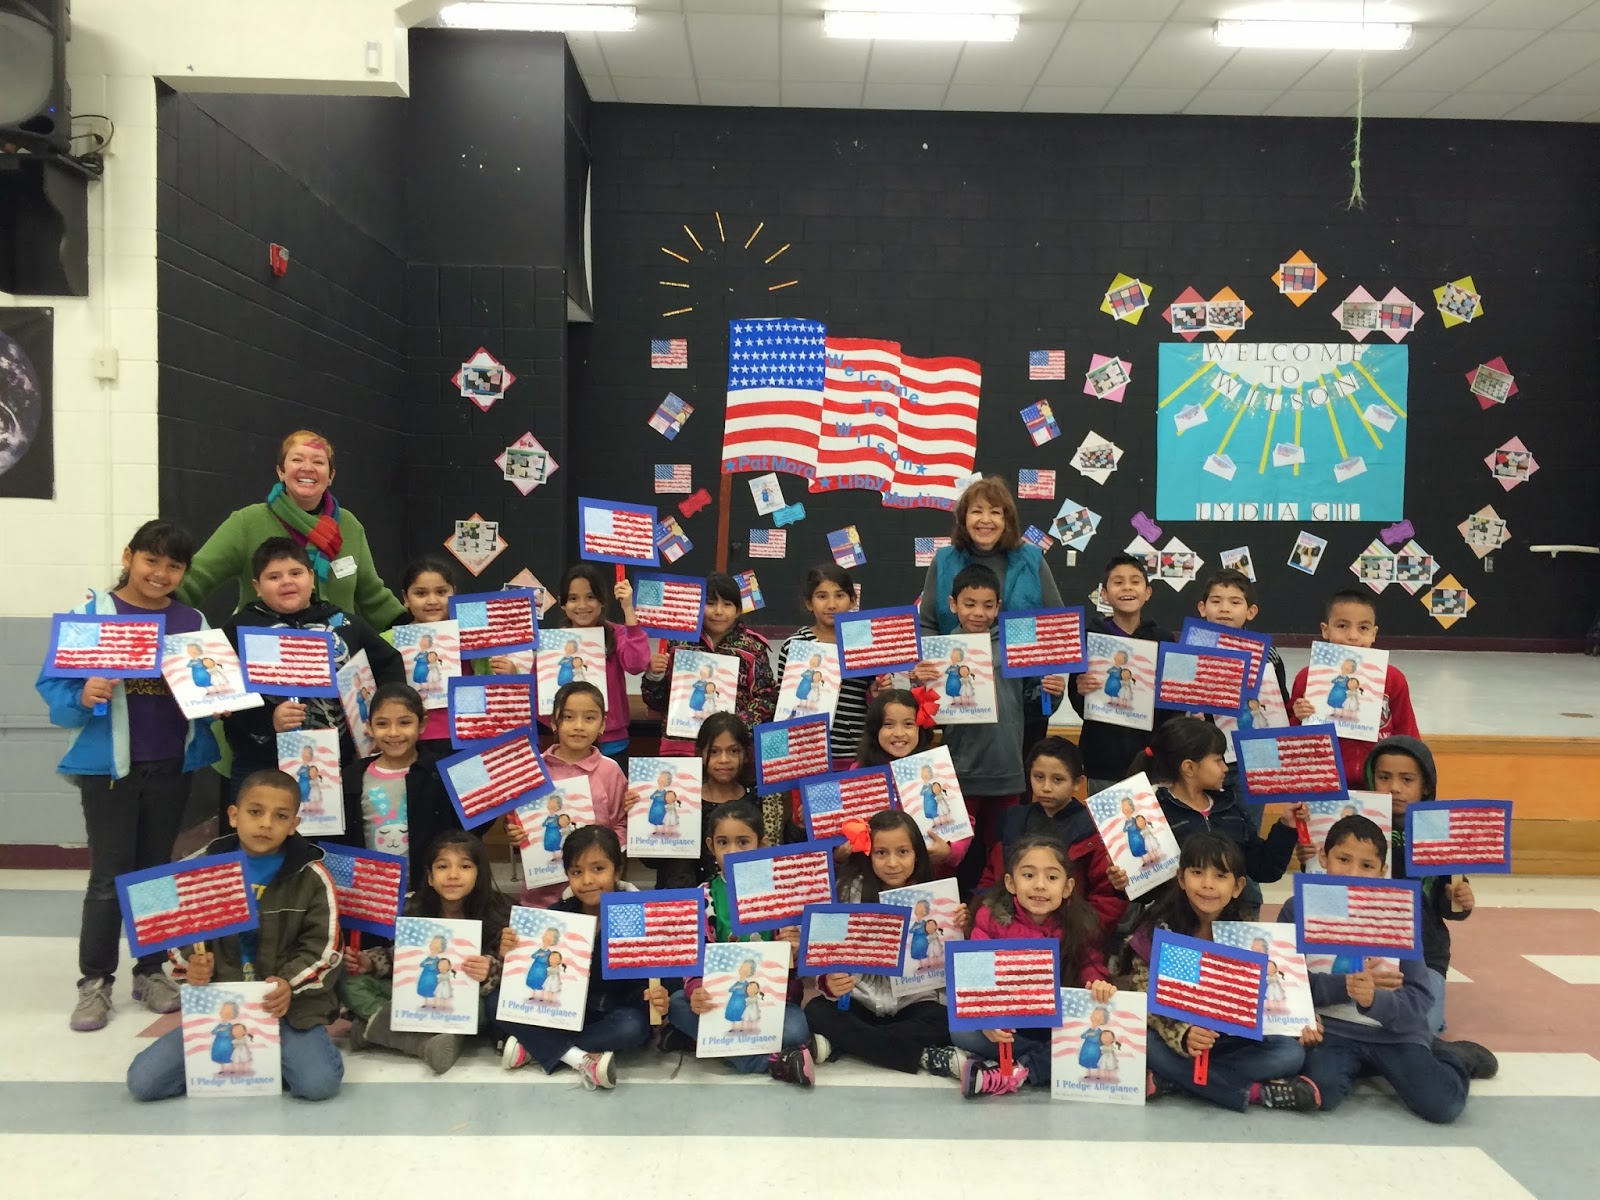 la bloga reading rock stars rio grande valley i treasure the memory of the pre k girls dressed as the statue of liberty and a judge in connection the book my daughter and i shared